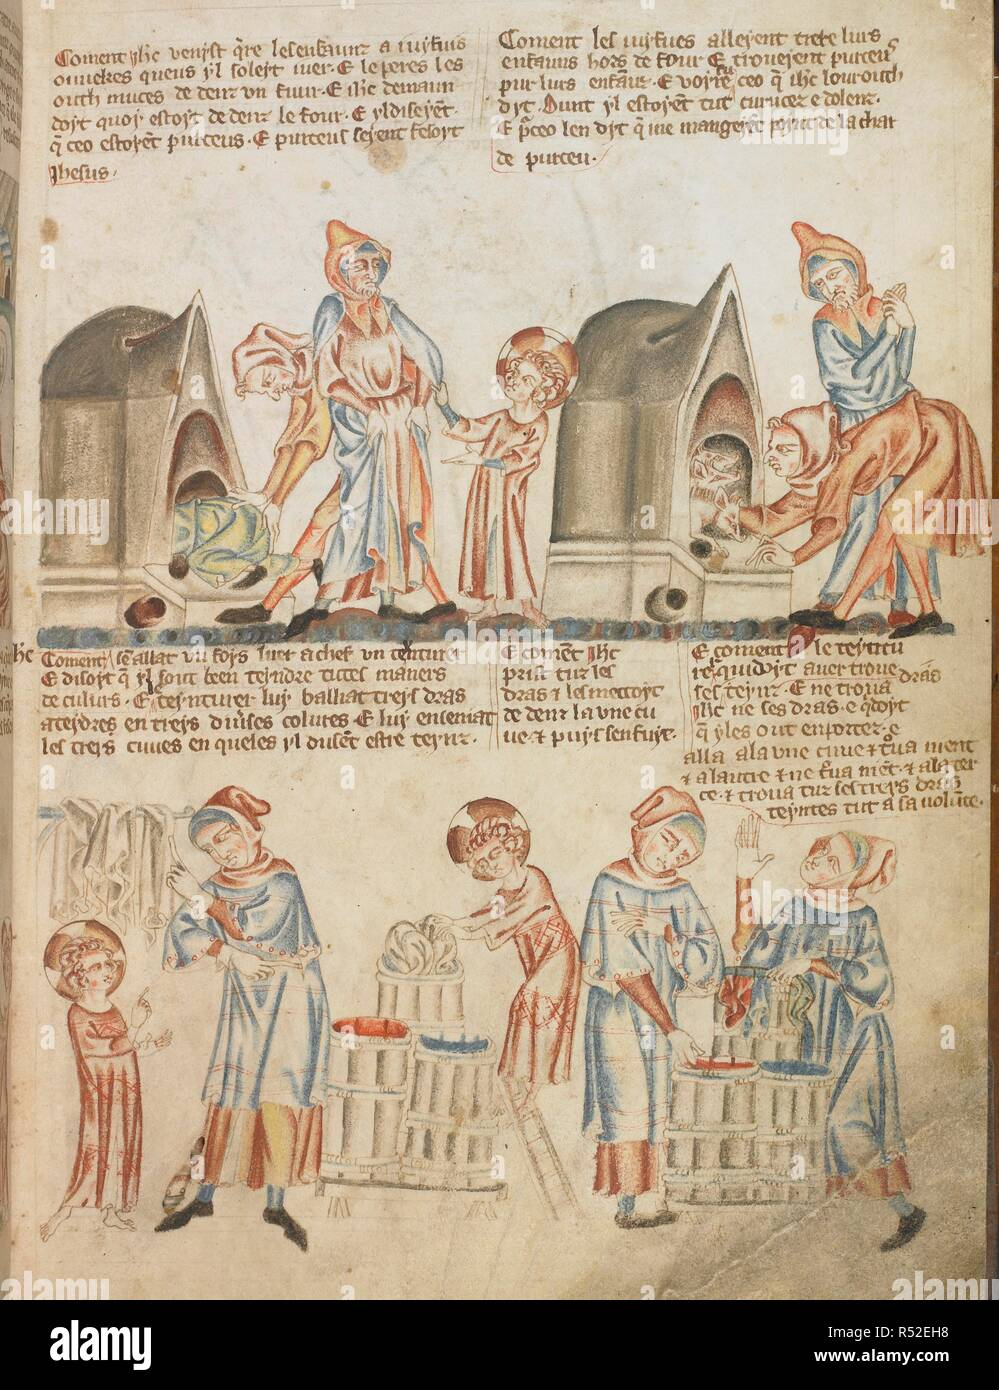 Two further miracles from Christ's childhood: children turned into pigs when they are hidden in an oven; Christ dyes cloth different colours. Holkham Bible Picture Book. England, circa 1320-1330. Source: Add. 47682, f.16. - Stock Image